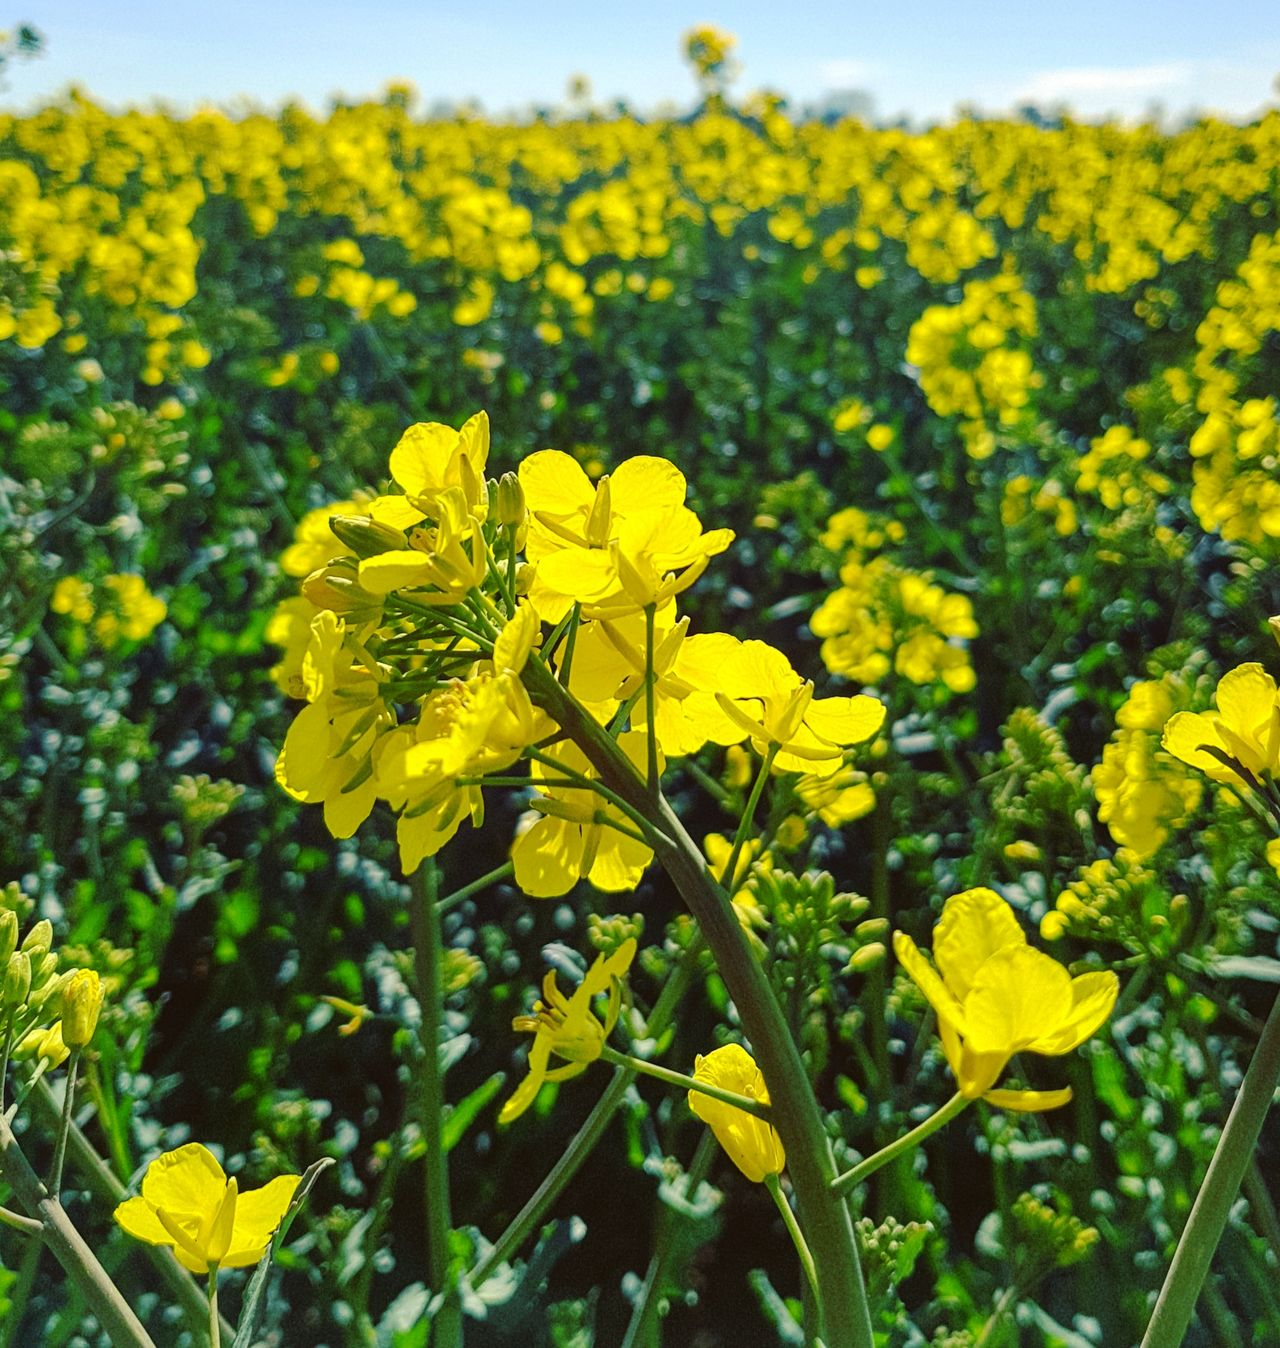 Yellow Flower Plant Growth Nature Beauty In Nature Day No People Outdoors Petal Fragility Green Color Freshness Close-up Leaf Flower Head Sky